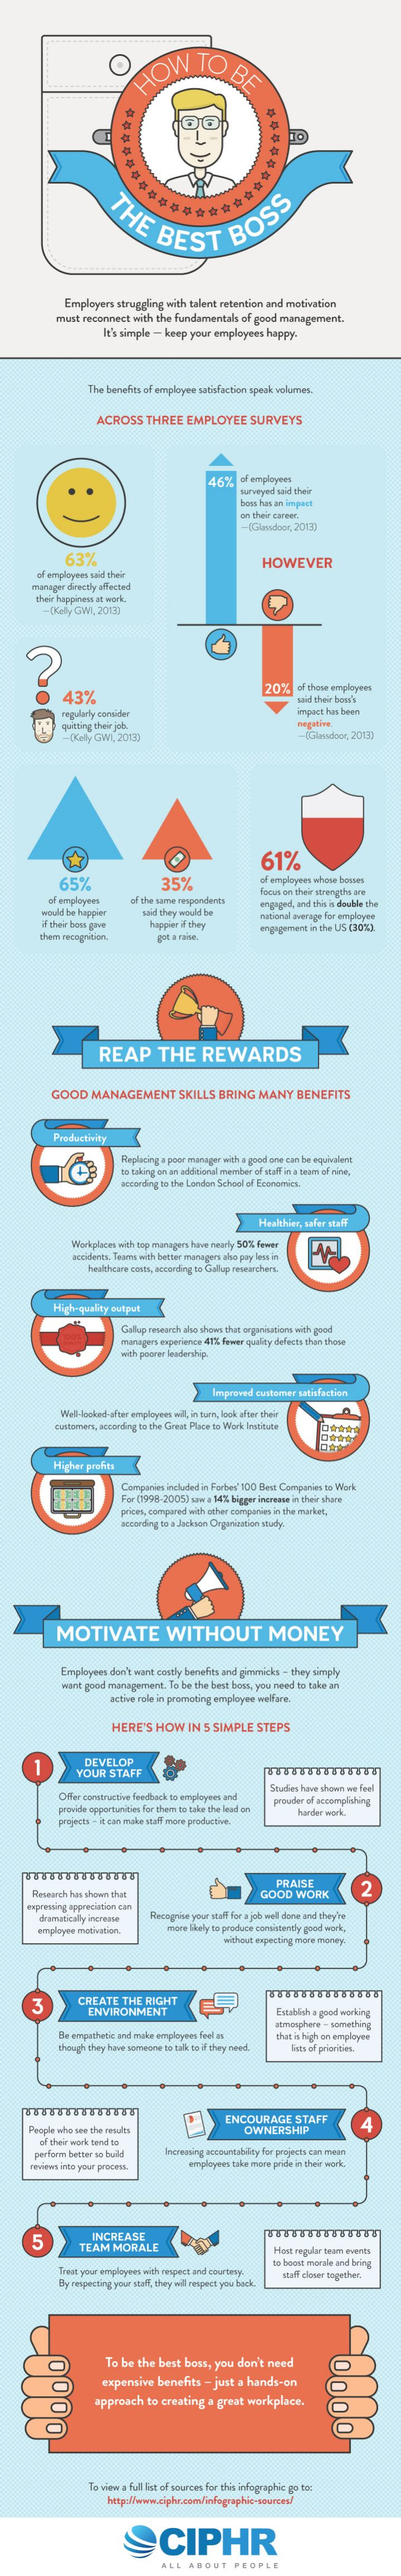 Infographic: How to be the best boss #infographic